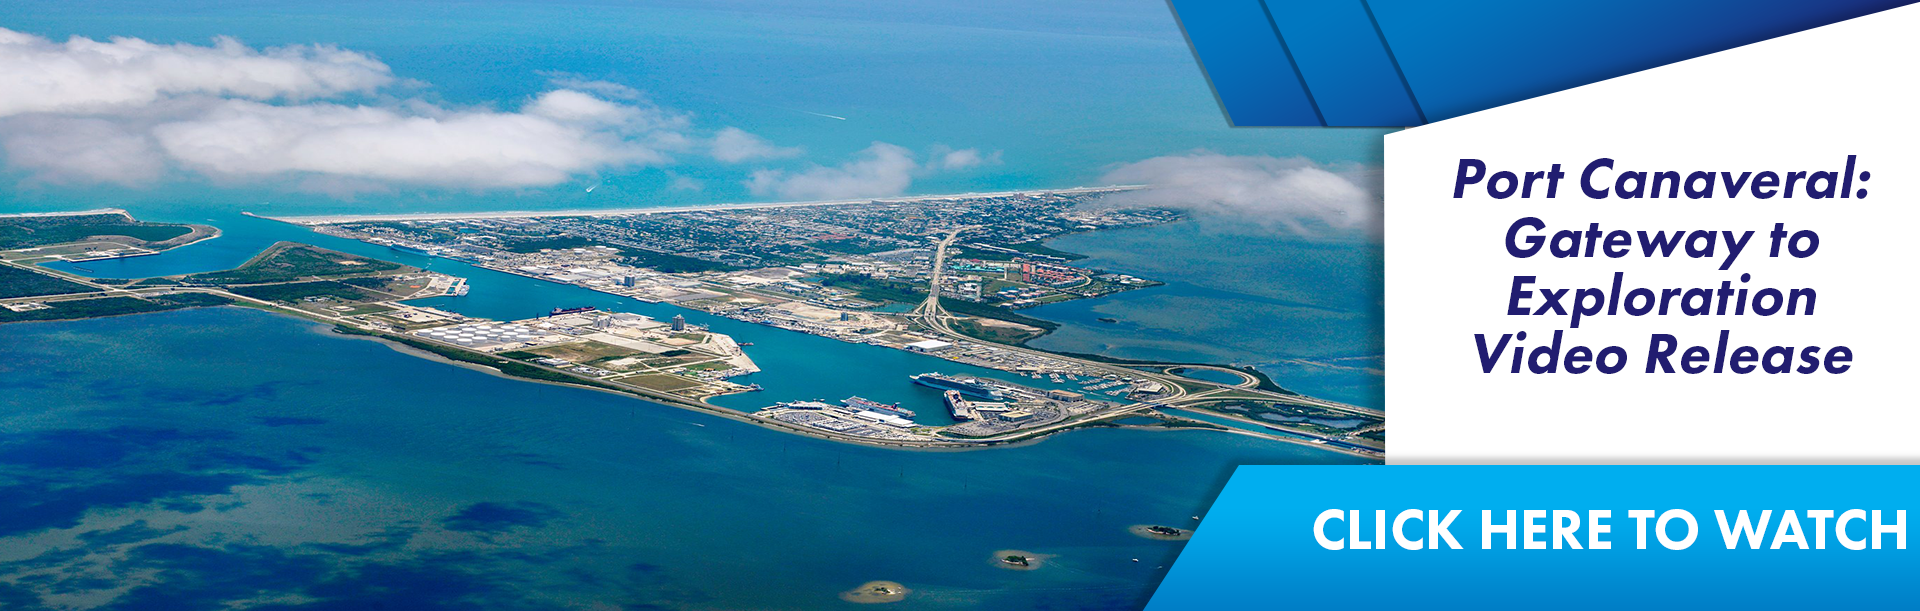 /PortCanaveral/media/Port-Canaveral/Slideshow%20Images/2018/REVISED-Banner-Gateway-Video.png?ext=.png